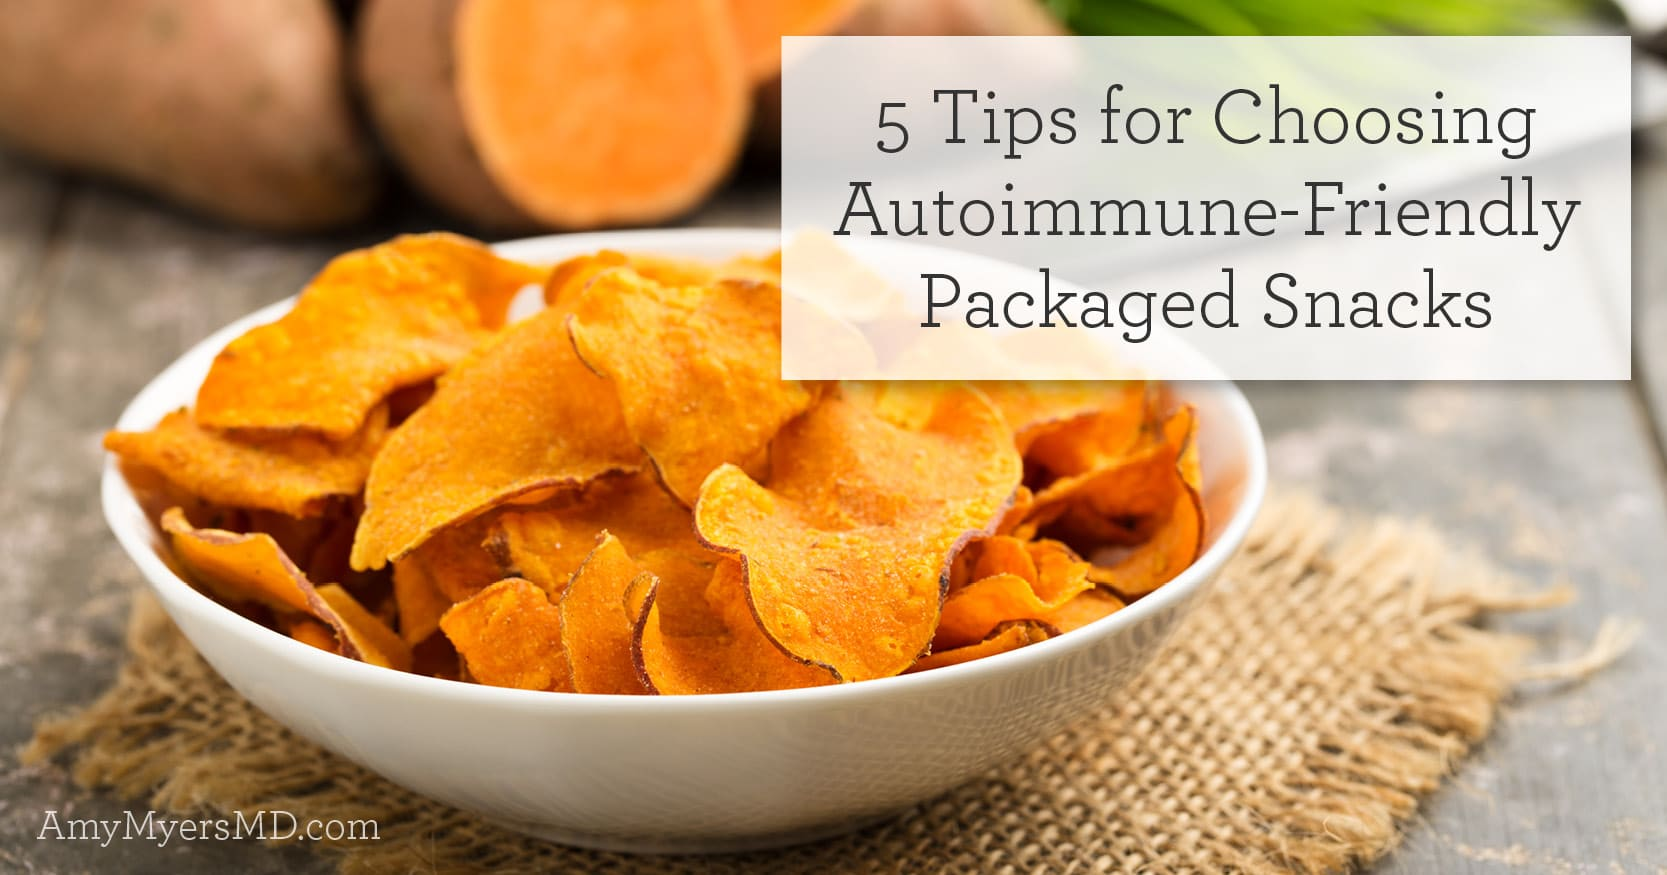 autoimmune-friendly packaged snacks